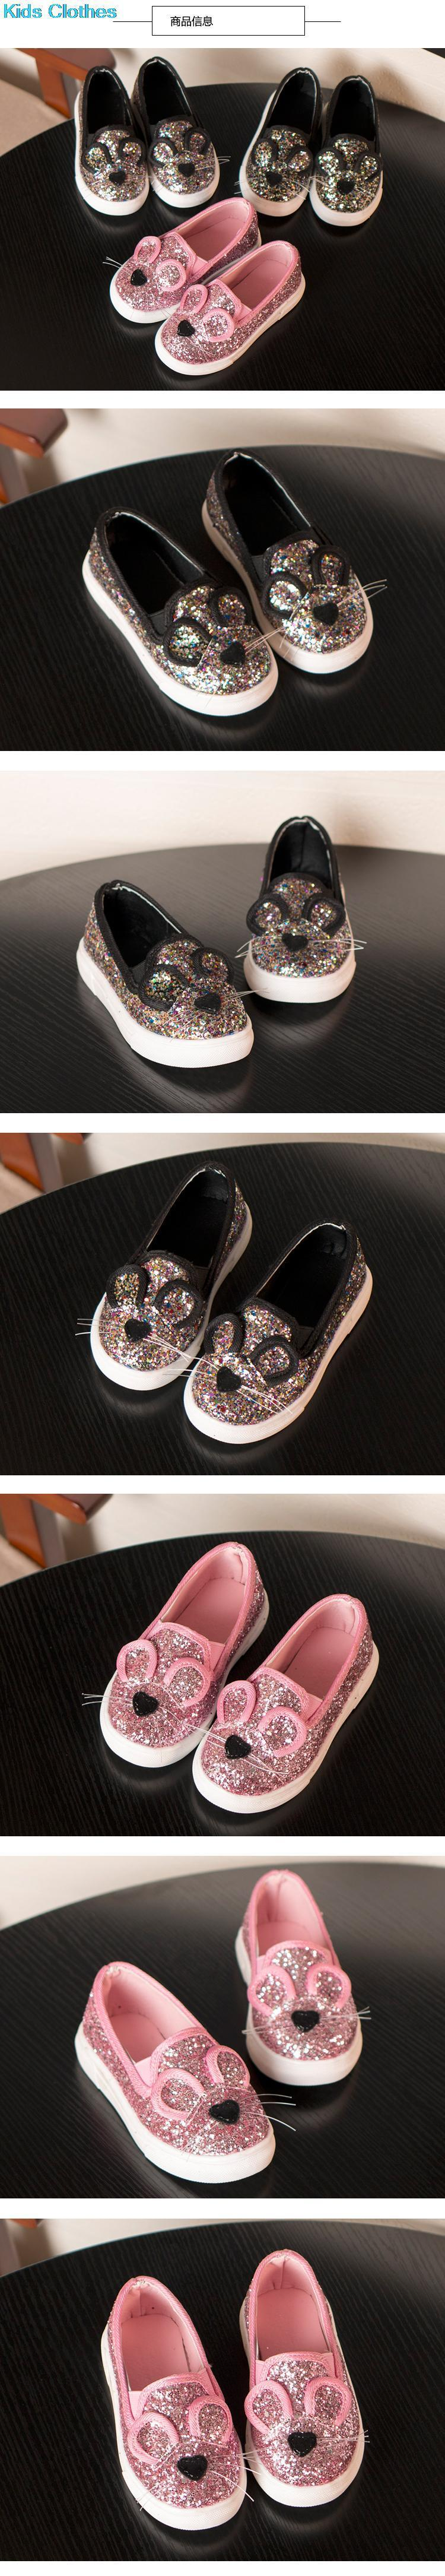 Casual Sequins baby Girl Shoes Cartoon Mouse Children's Shoes Spring Summer Brand Children Boy Brand Glitter Fashion Sneaker 4